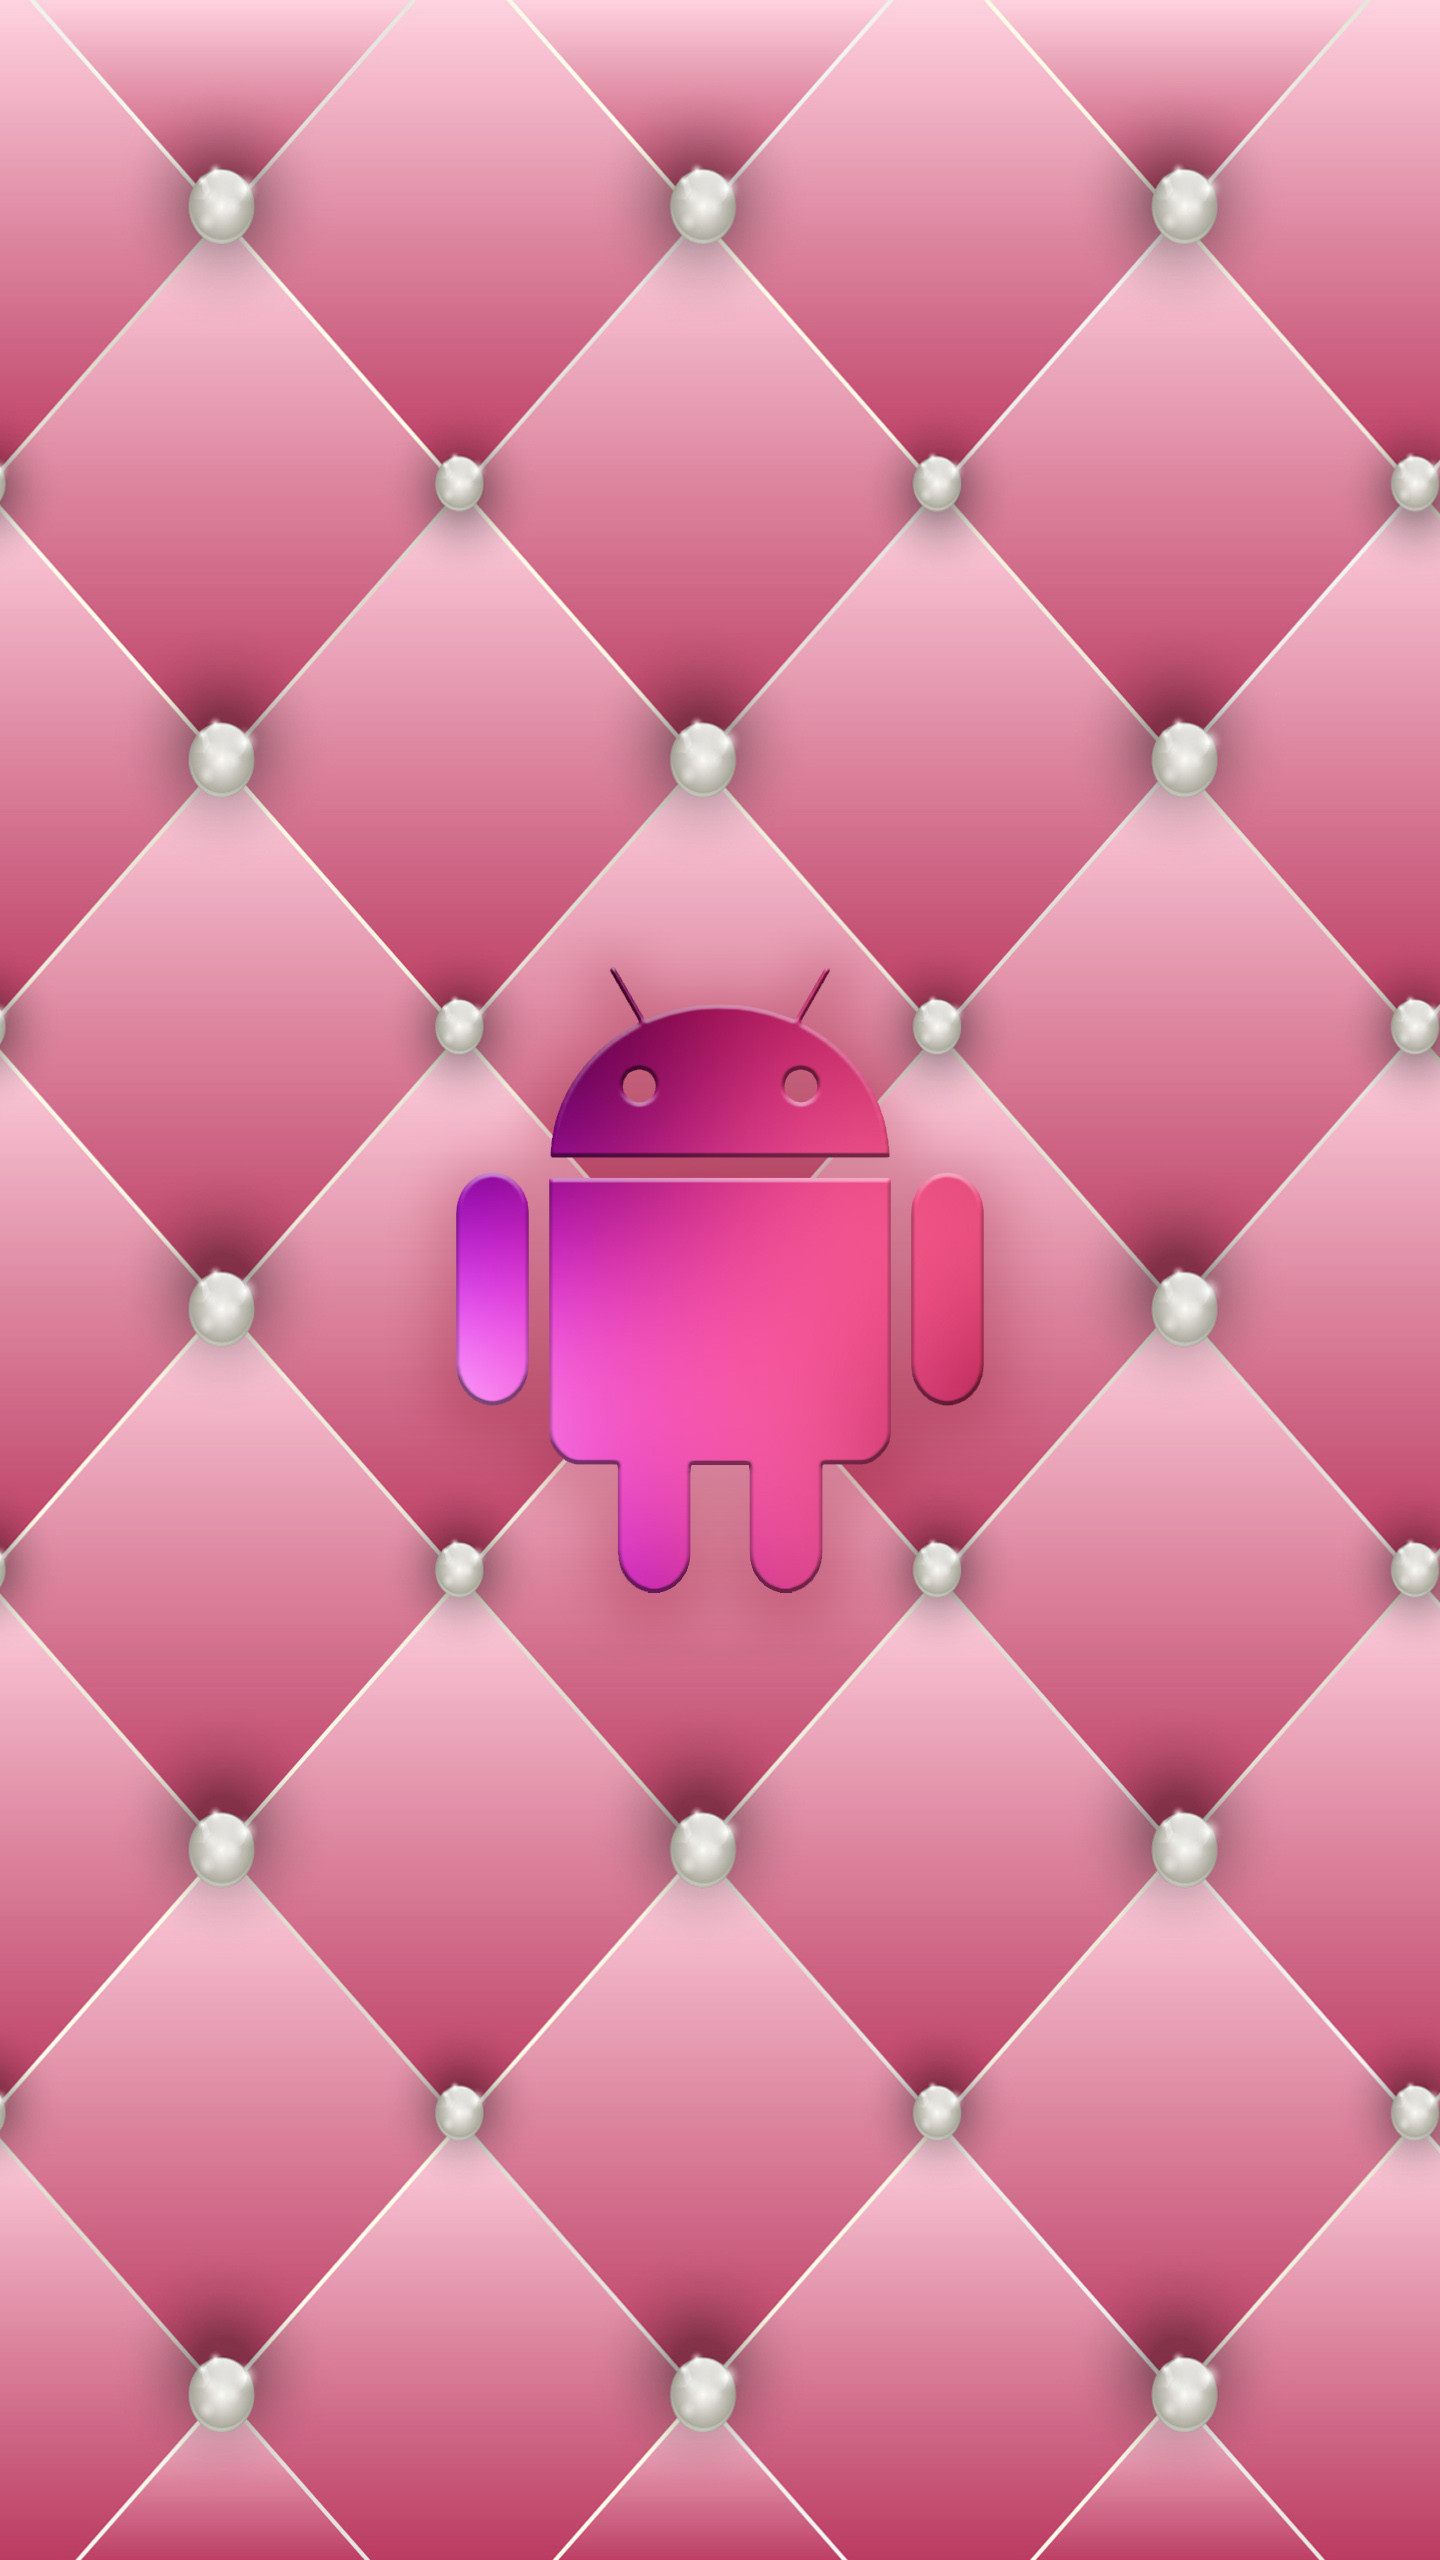 Download the Android The Pink Diamond Shines wallpaper